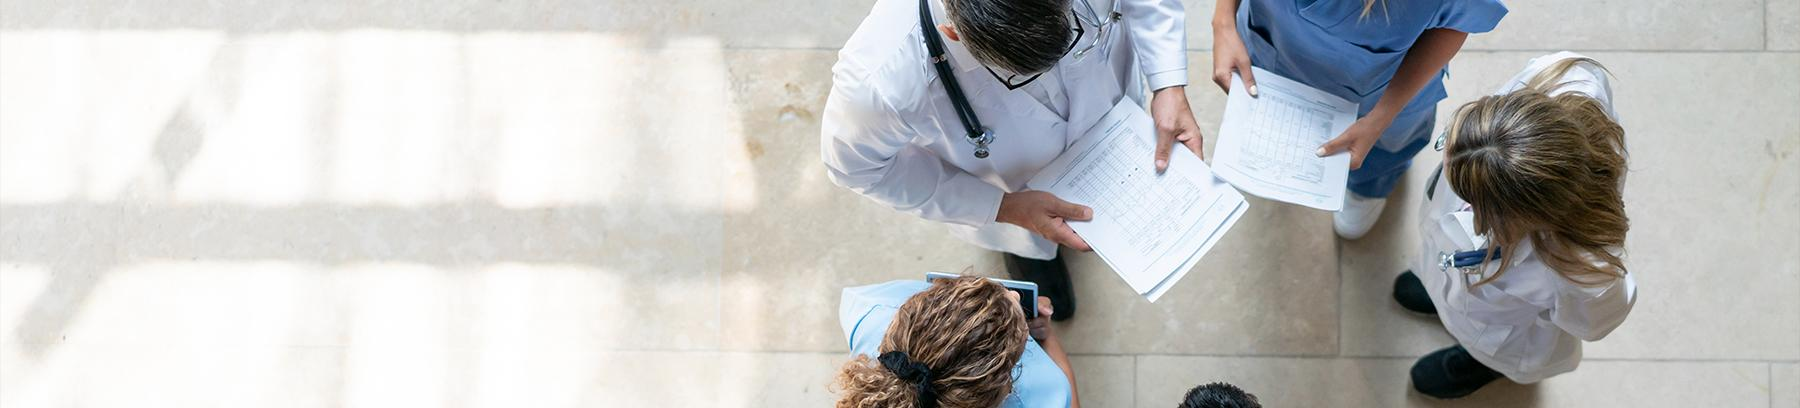 Overhead view of doctors and nurses discussing patient charts